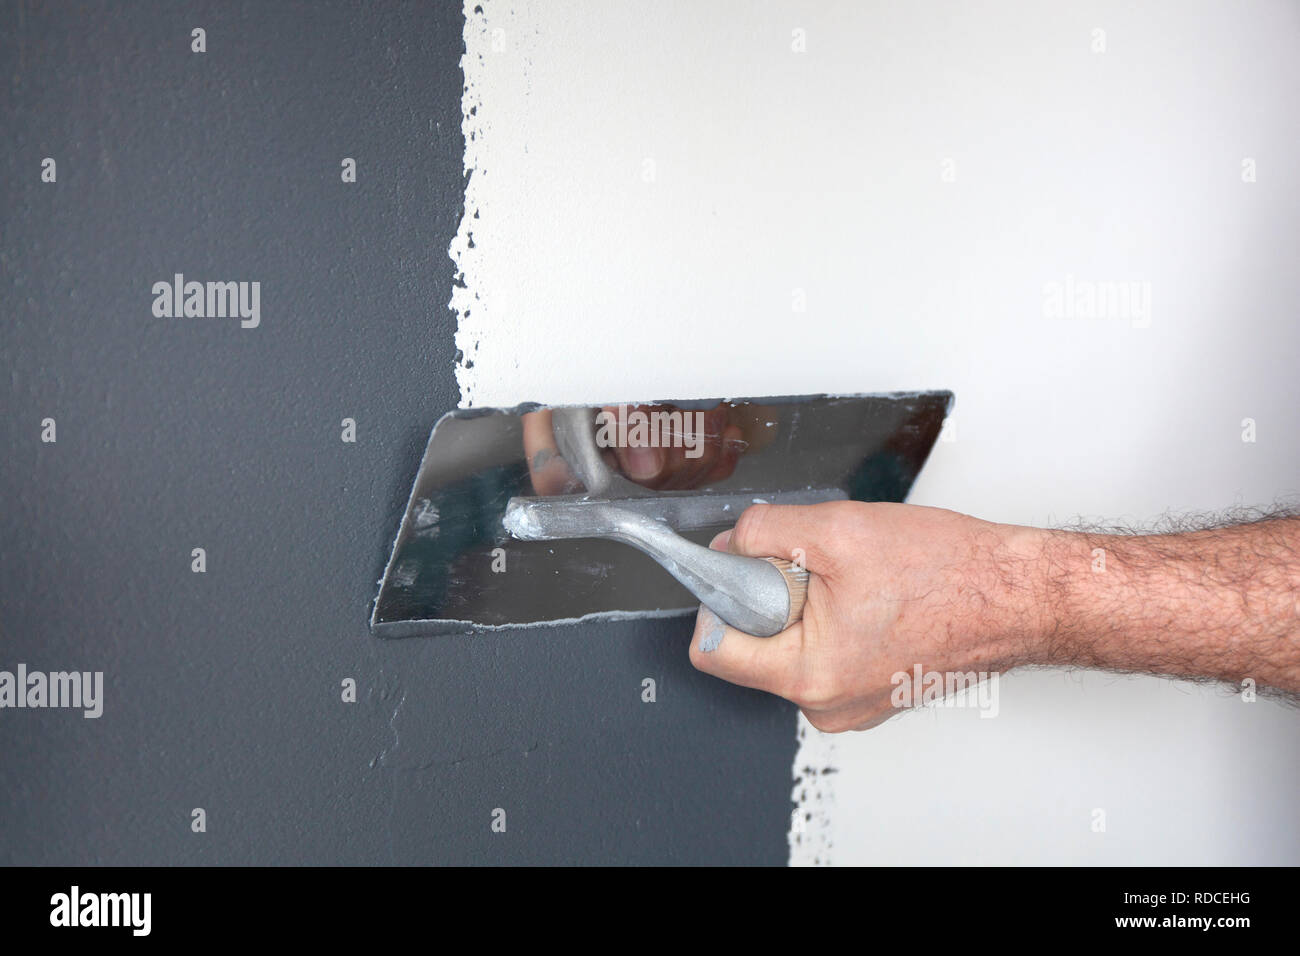 Hand with a trowel plastering a wall with decorative plaster Stock Photo